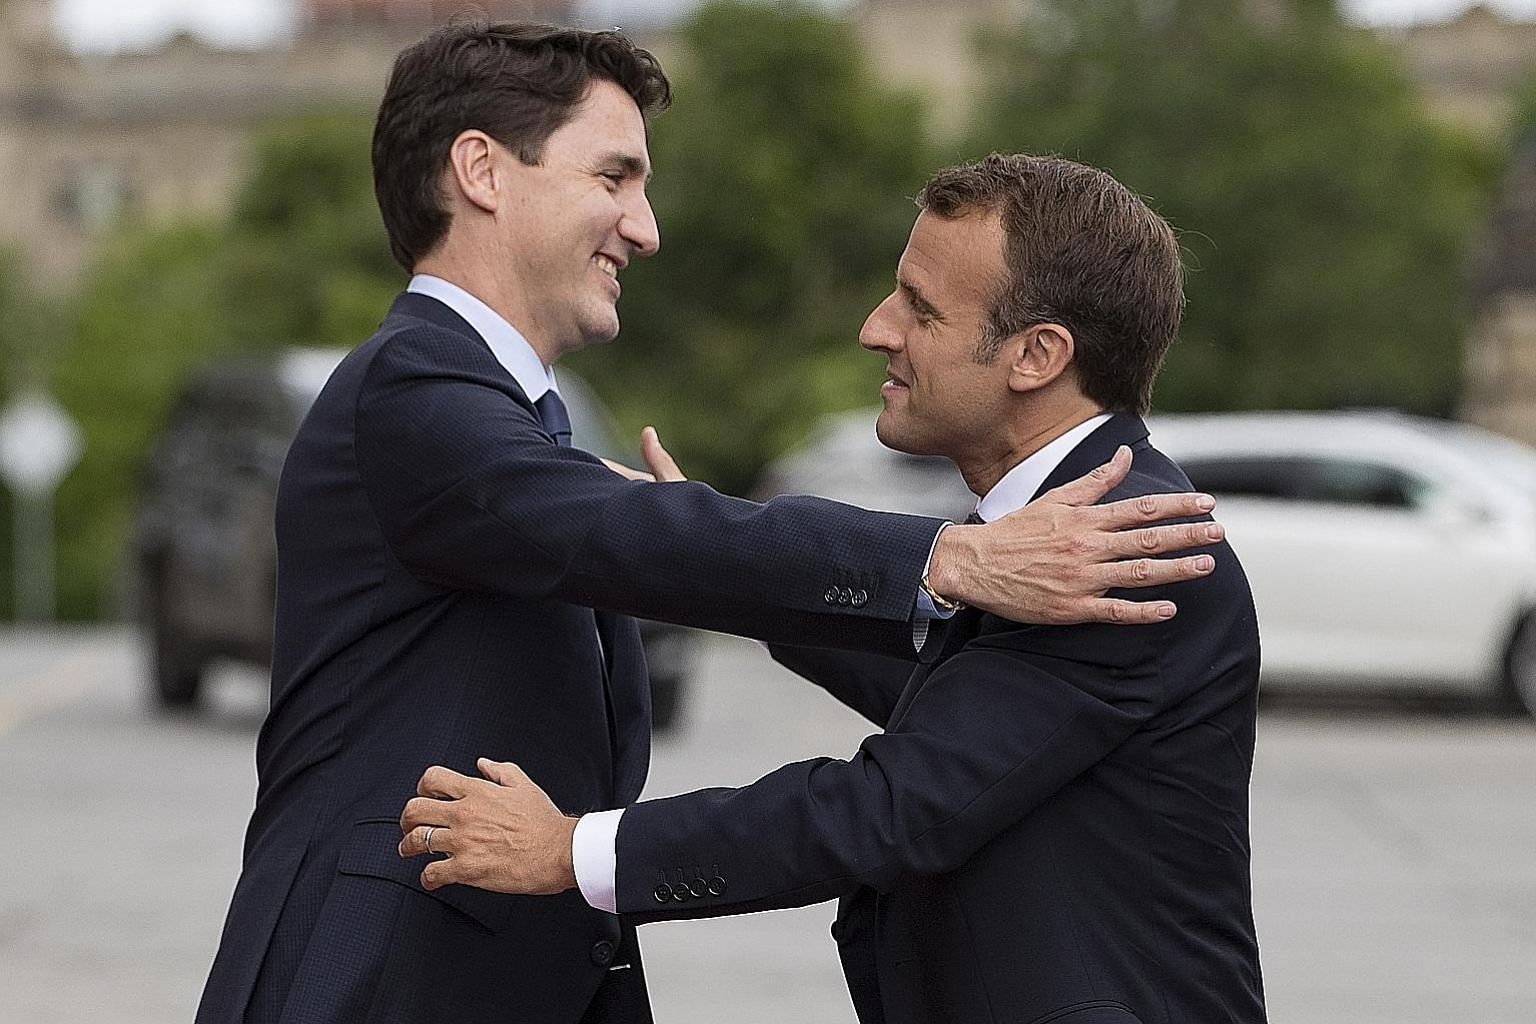 Canadian Prime Minister Justin Trudeau (left) greeting French President Emmanuel Macron as he arrived at Parliament Hill in Ottawa, Canada, on Wednesday. Mr Trudeau has slammed US President Donald Trump's tariffs on Canadian steel and aluminium, whil